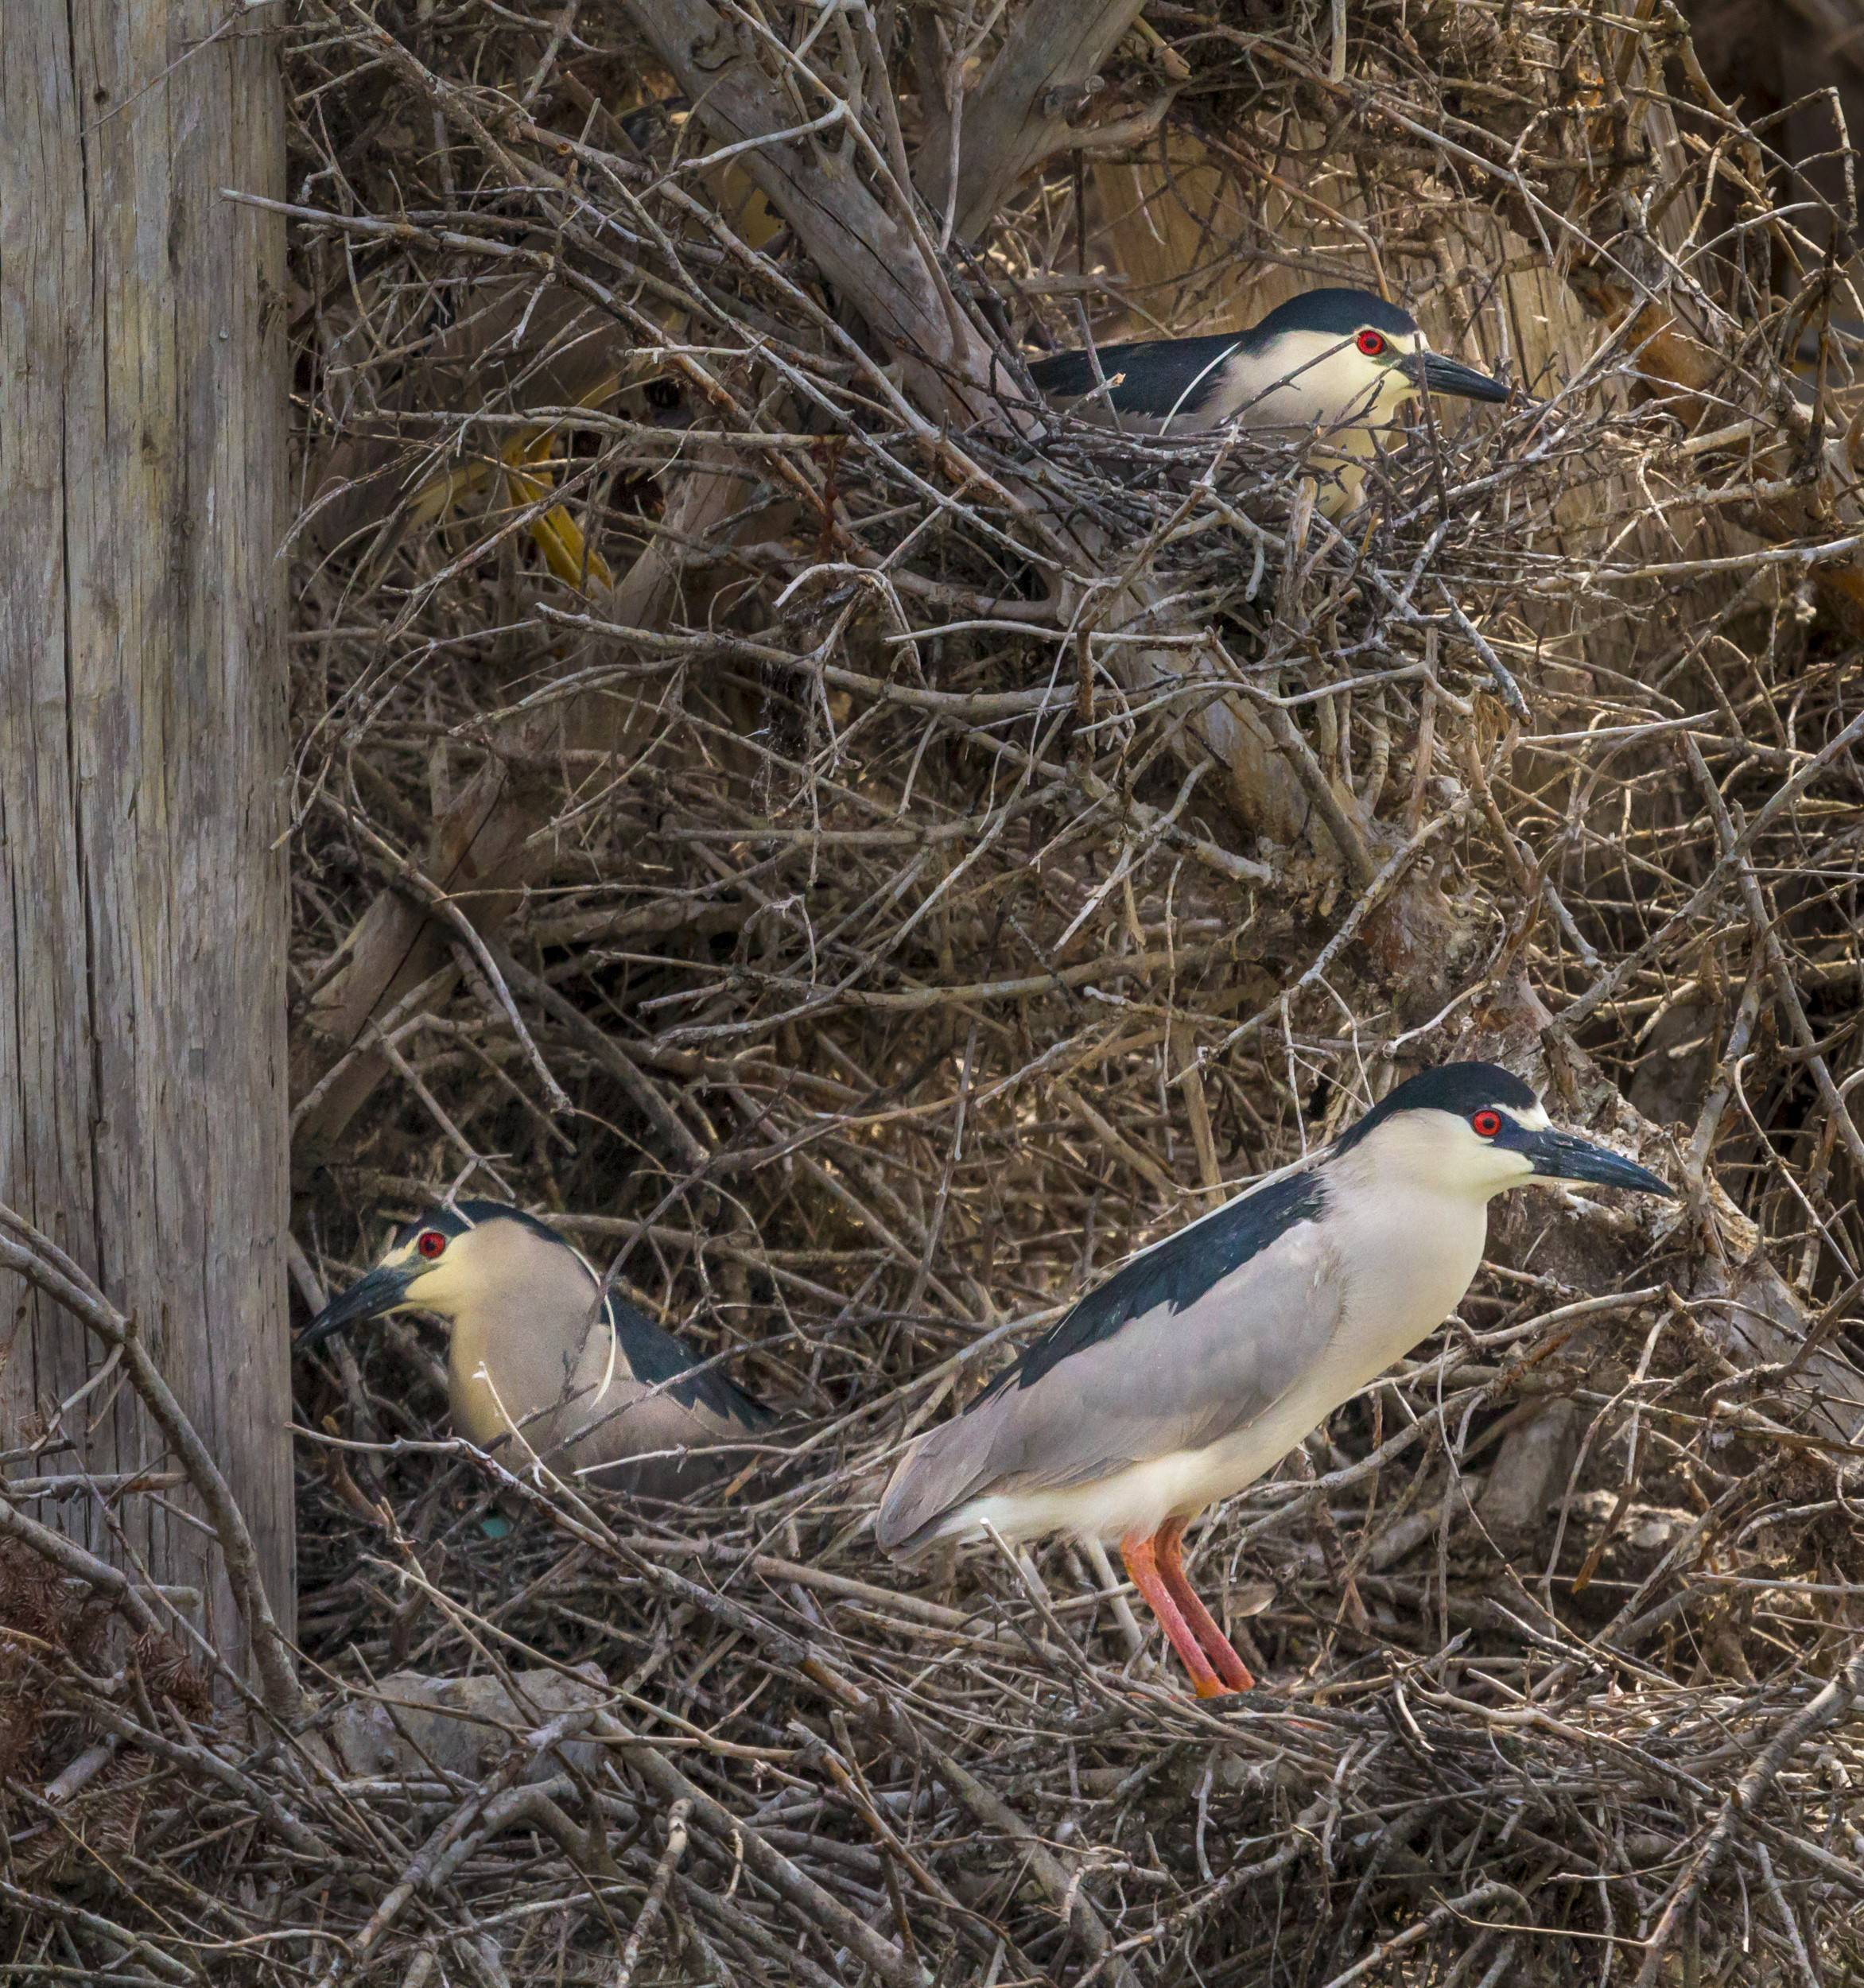 Four Black-crowned Night Heron nests were observed during the nesting count. These timid herons find safe homes in cut out areas of the Christmas trees along the shoreline.